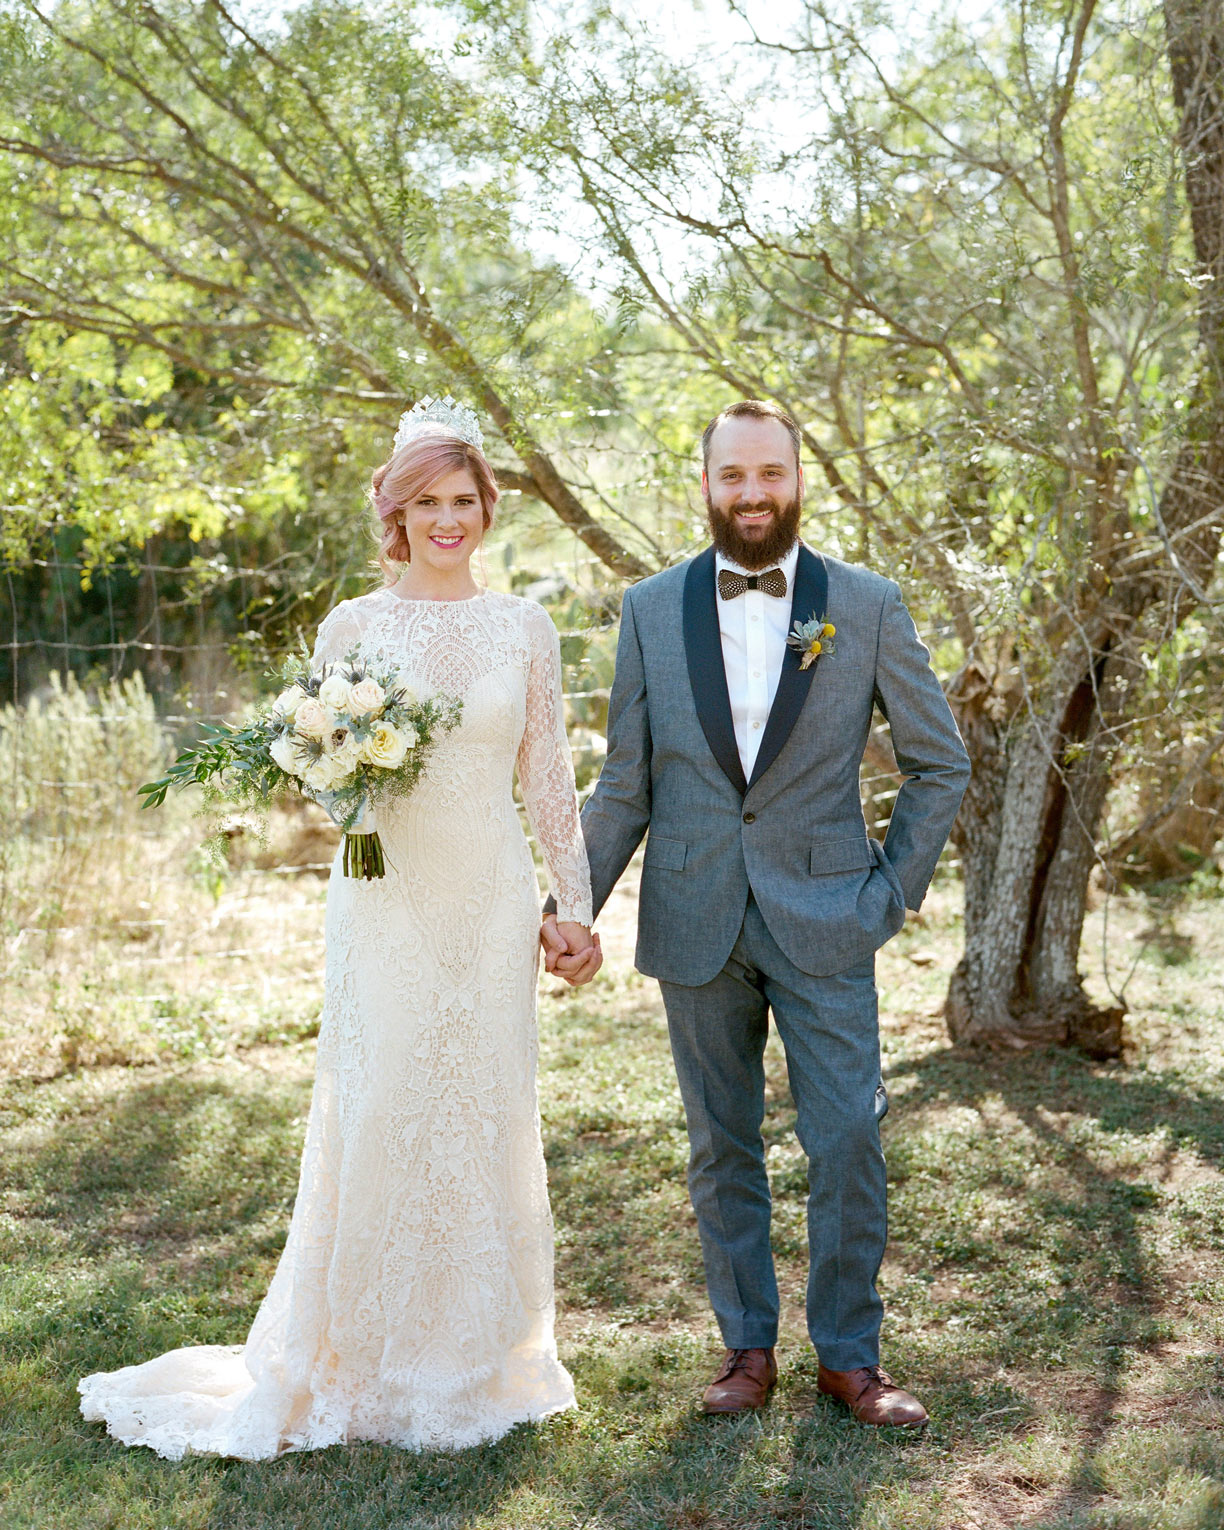 abby-chris-wedding-texas-couple-0373-s112832-0516.jpg